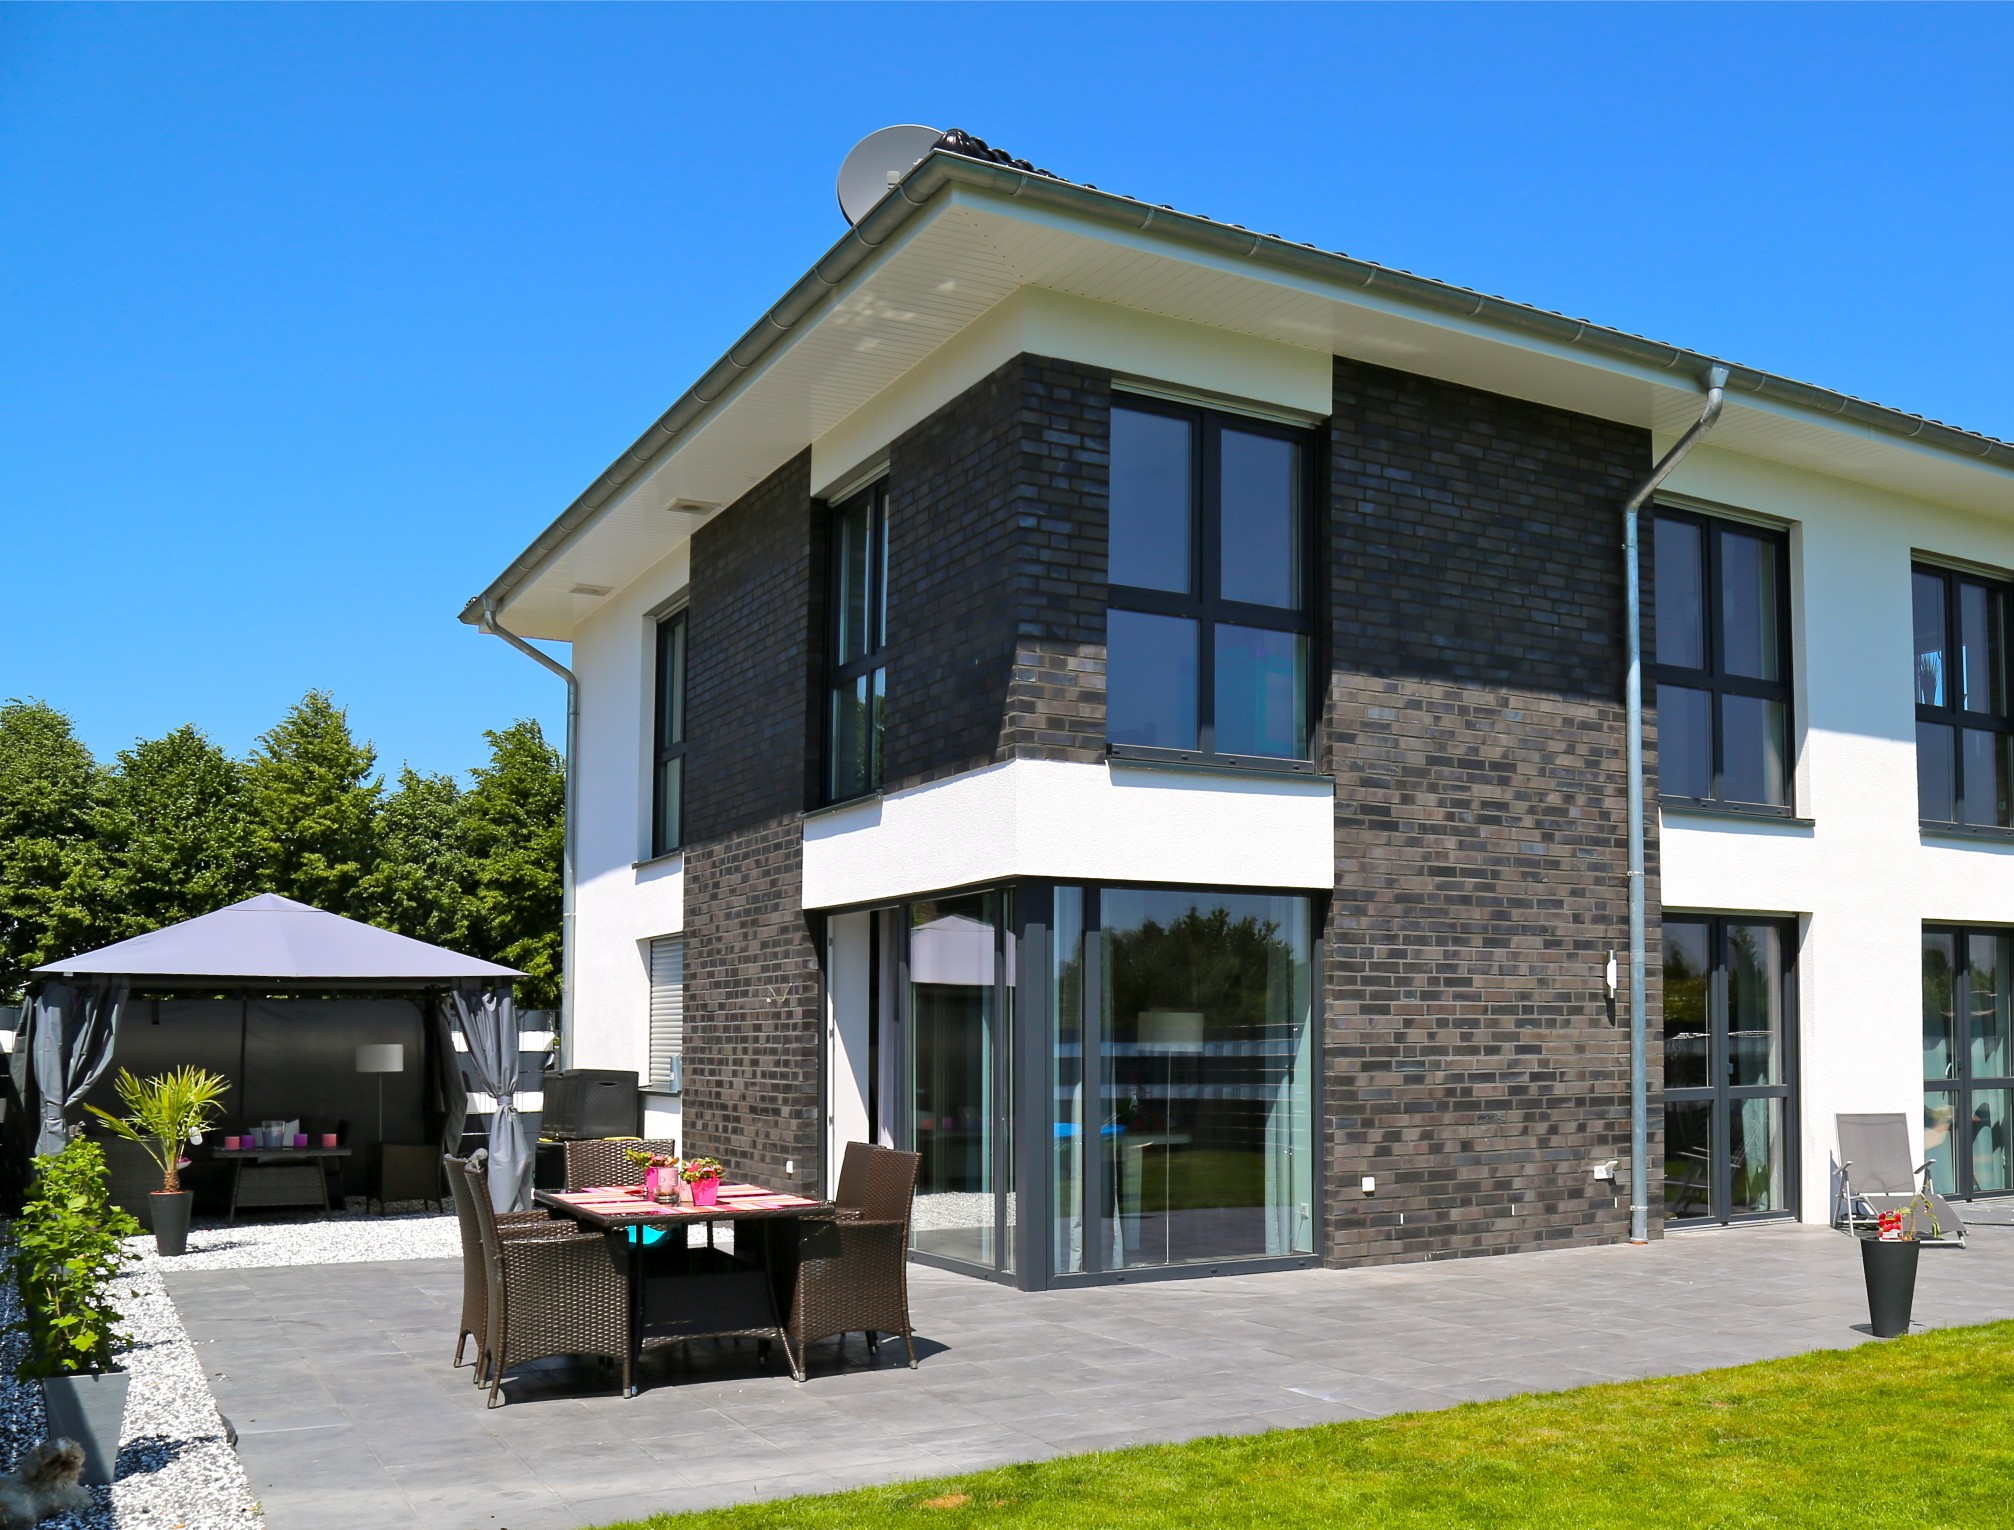 stadtvilla mit garage stadtvilla mit pultdach und garage harmona dialuxe musterhaus. Black Bedroom Furniture Sets. Home Design Ideas